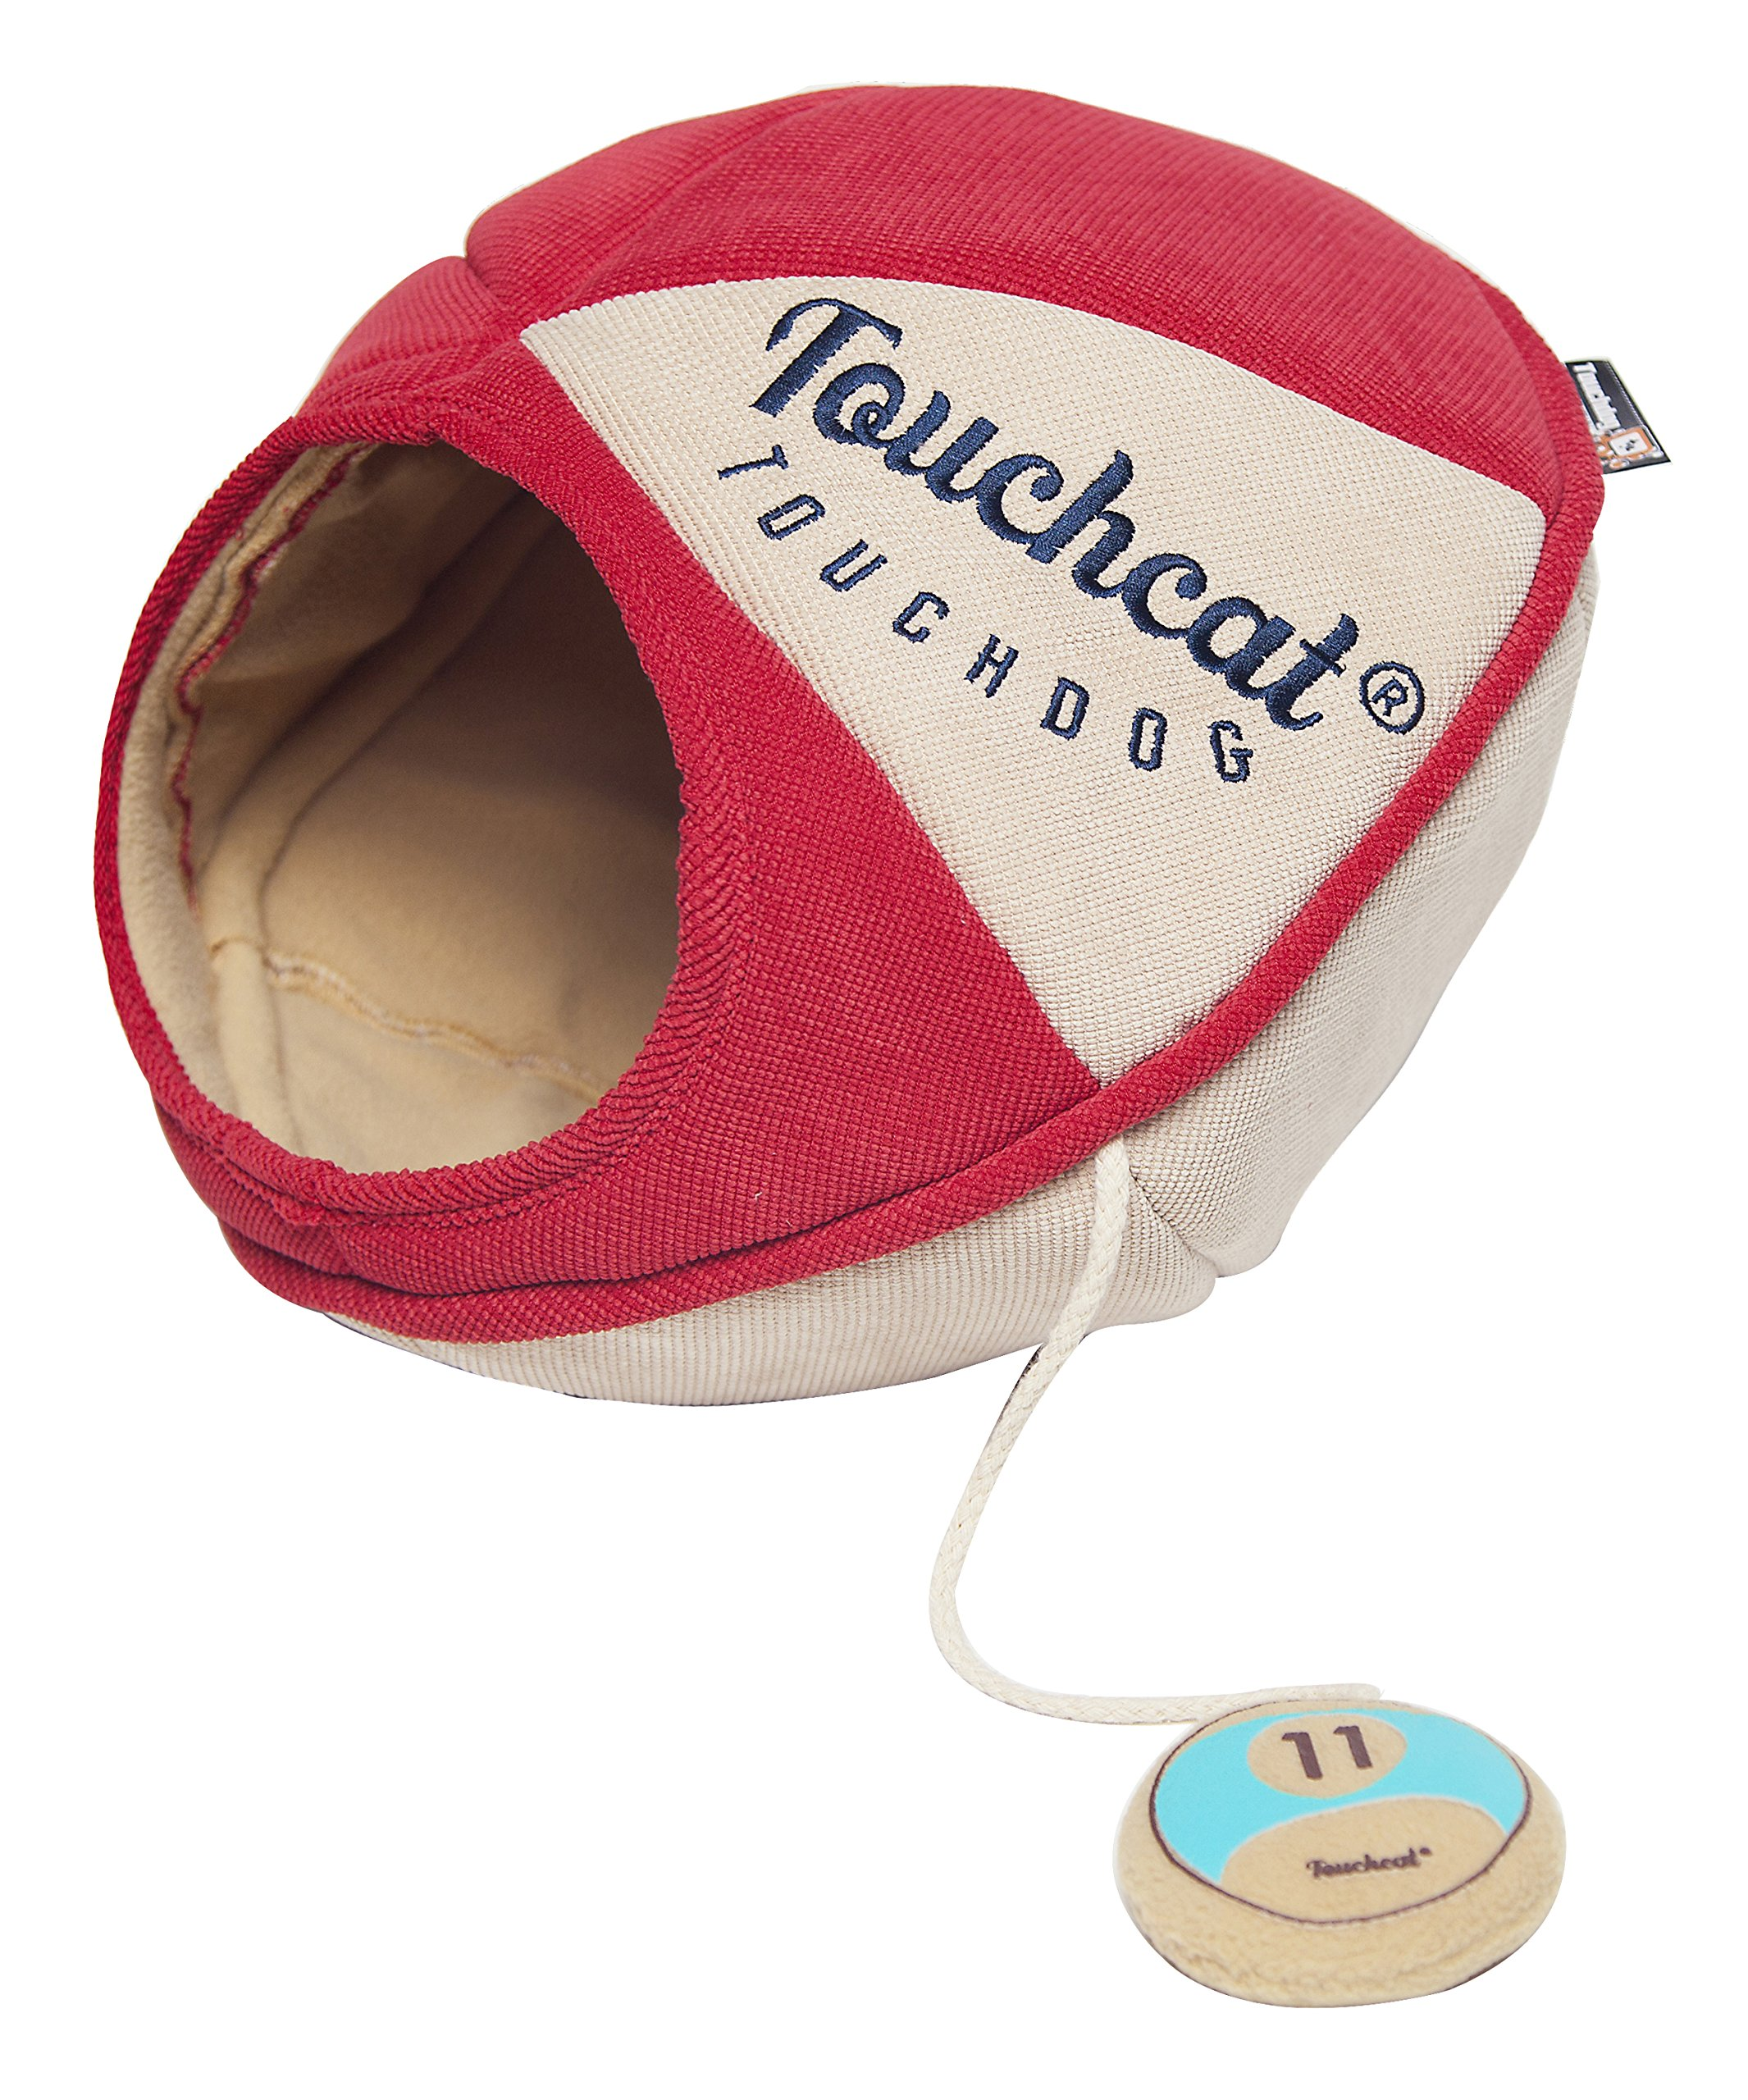 Touchcat 'Oval Saucer' Collapsible Walk-Through Kitty Pet Cat Bed House w/Play Active Teaser Toy, Large, Red